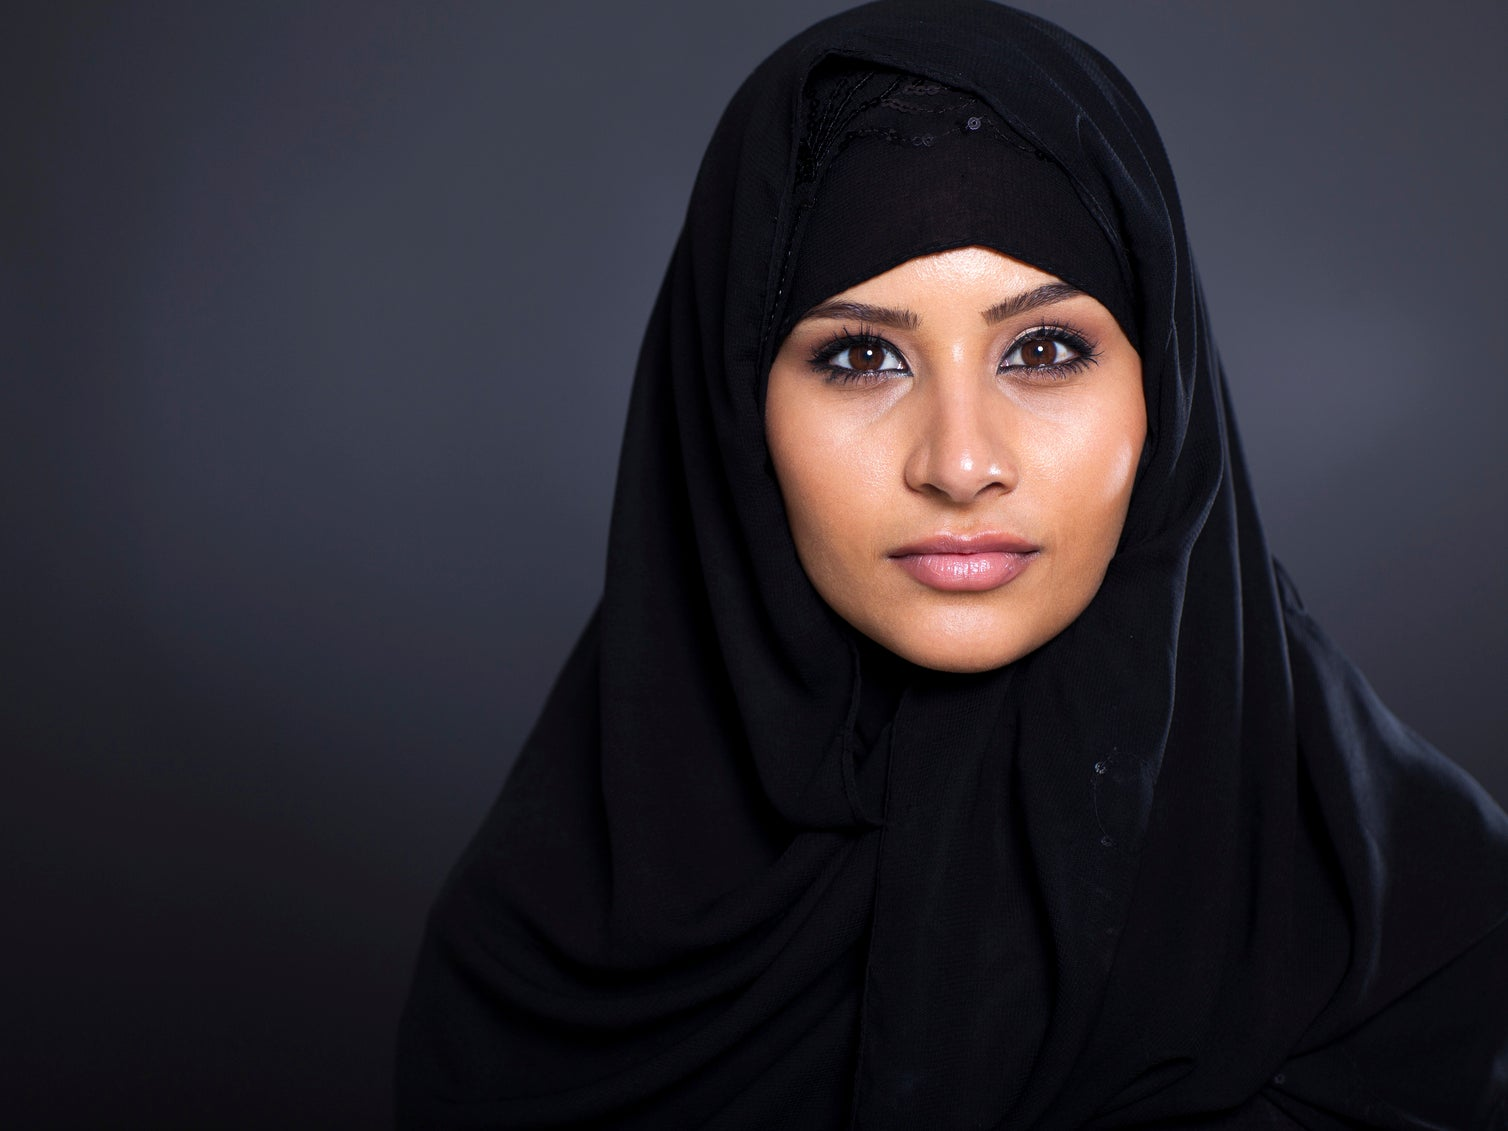 newbury park muslim women dating site A muslim woman is suing a california police department over claims they forced her to remove her headscarf while in custody jennifer hyatt, a nurse from newbury park, was left feeling 'naked and.